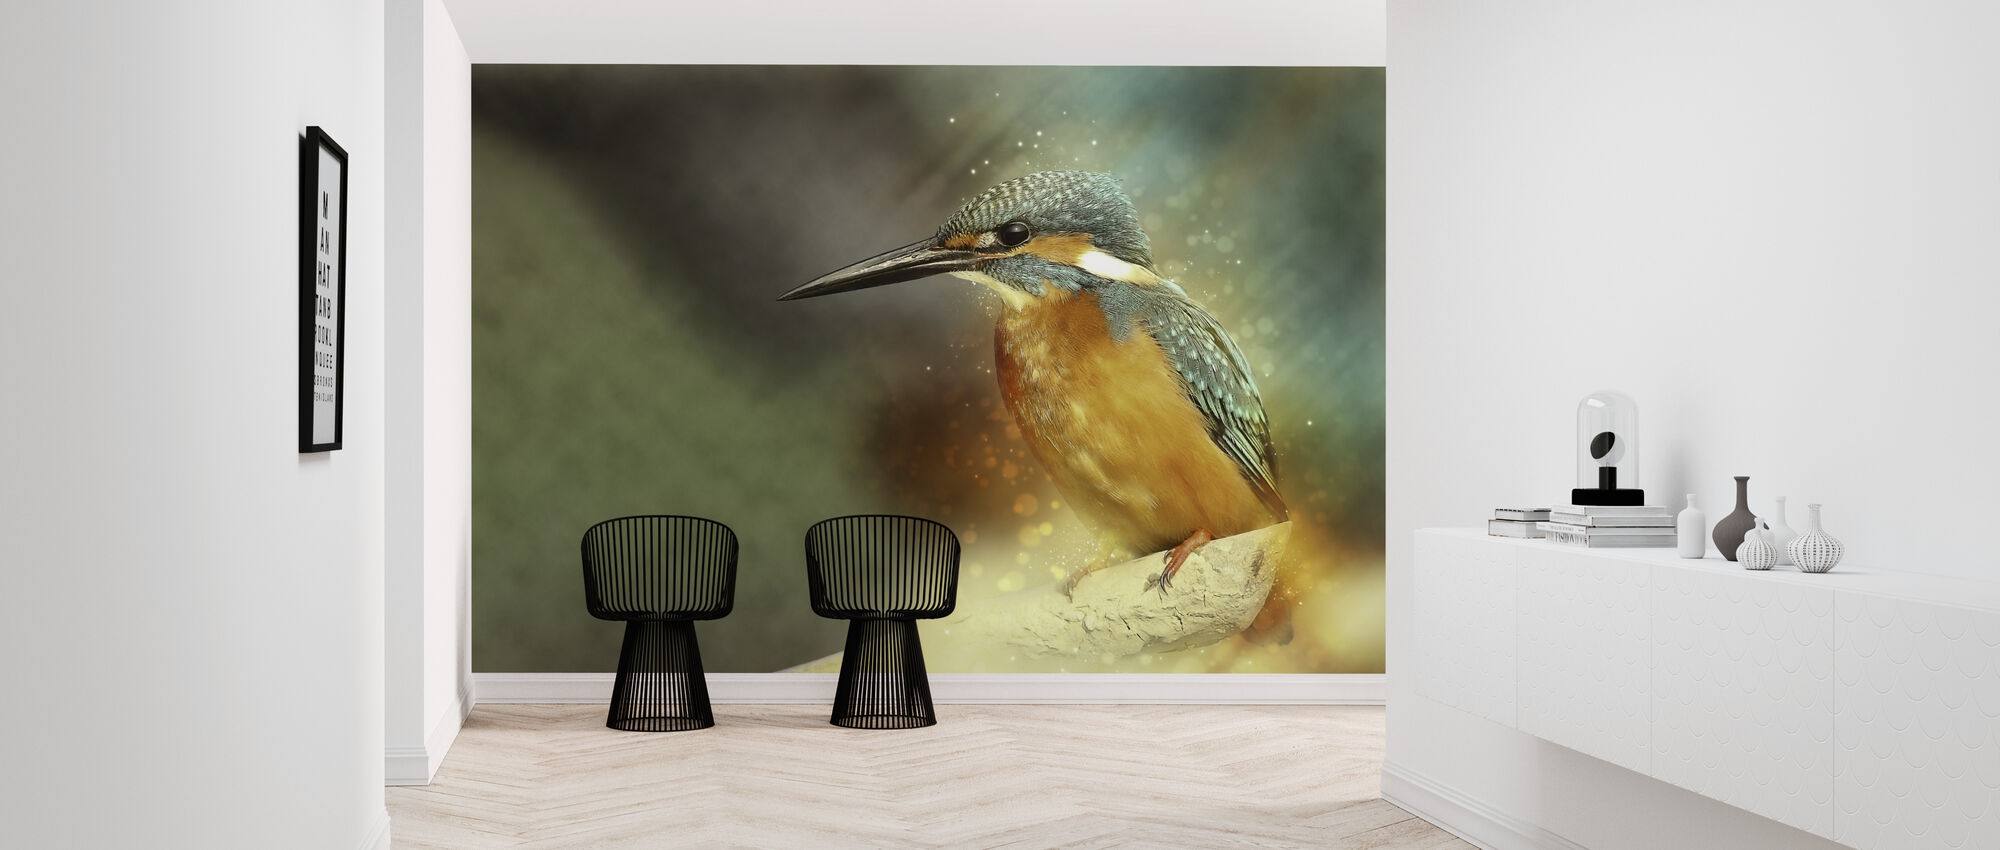 Perched Kingfisher - Wallpaper - Hallway